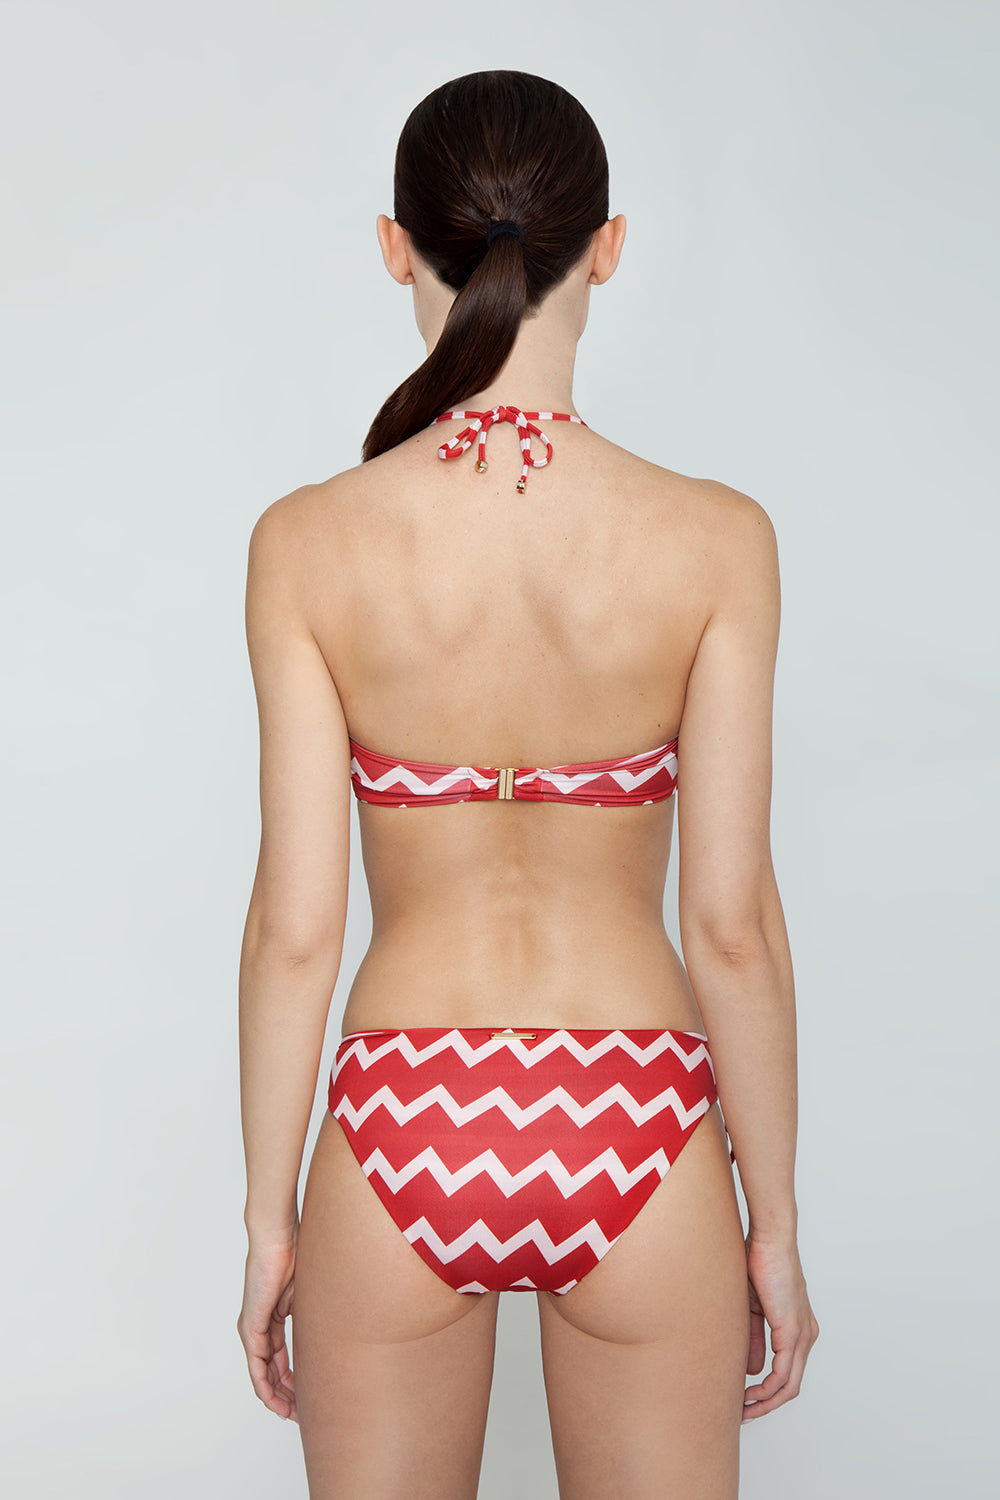 STELLA MCCARTNEY Zig-Zag Bandeau Ring Bikini Top - Red/Cream Chevron Print Bikini Top | Red/Cream Chevron Print| Stella McCartney Bandeau Ring Cut Out Bikini Top - Red/Cream Chevron Print Features:   Bandeau style  Ring cut out  Halter neck strap Back View